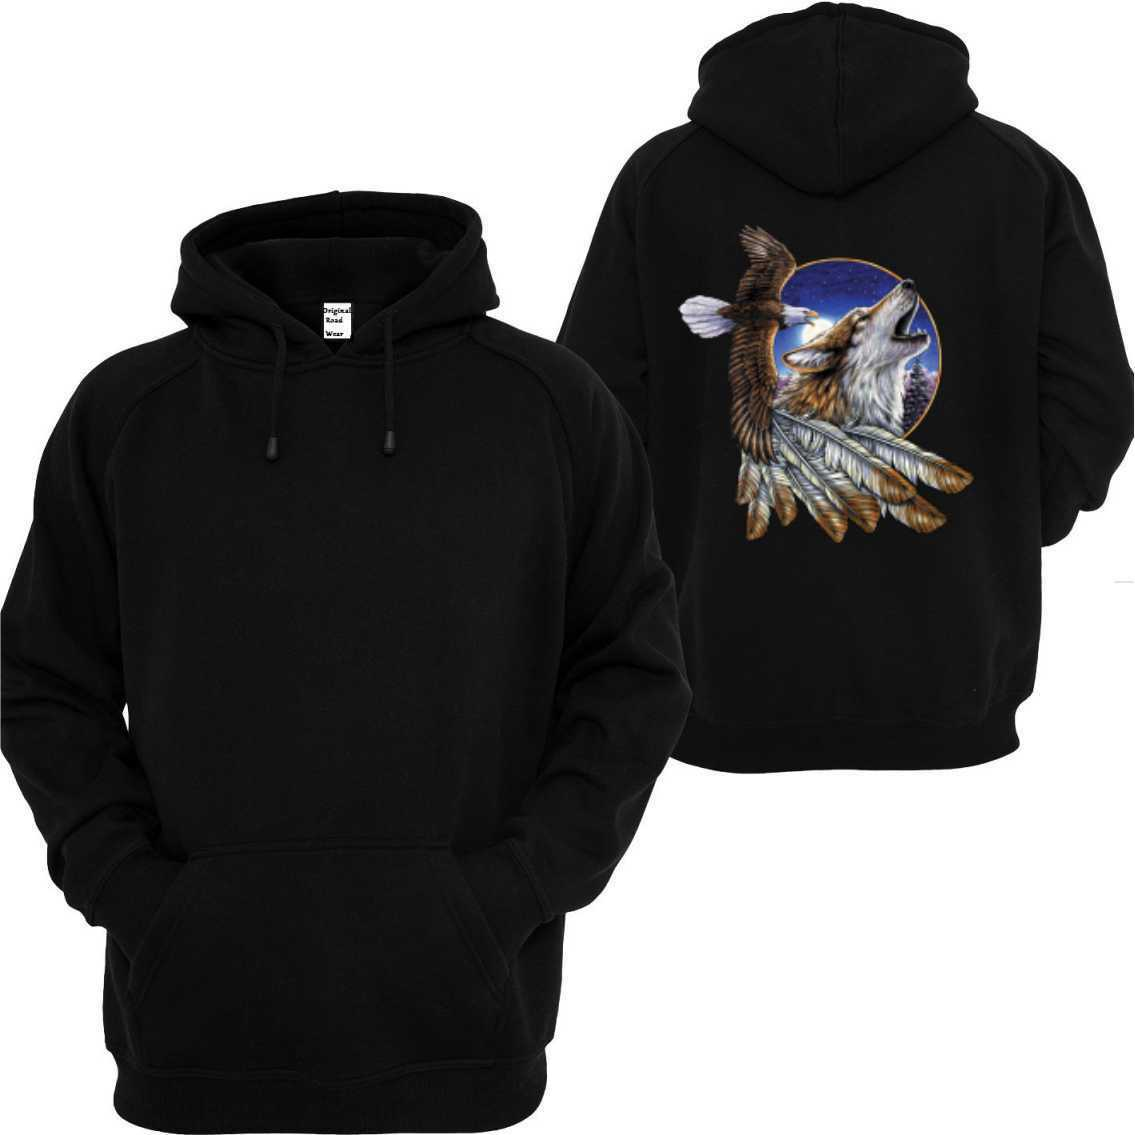 Kapuzensweatshirt black Tier Natur Wildnismotiv Modell Eagle Wolf Feather